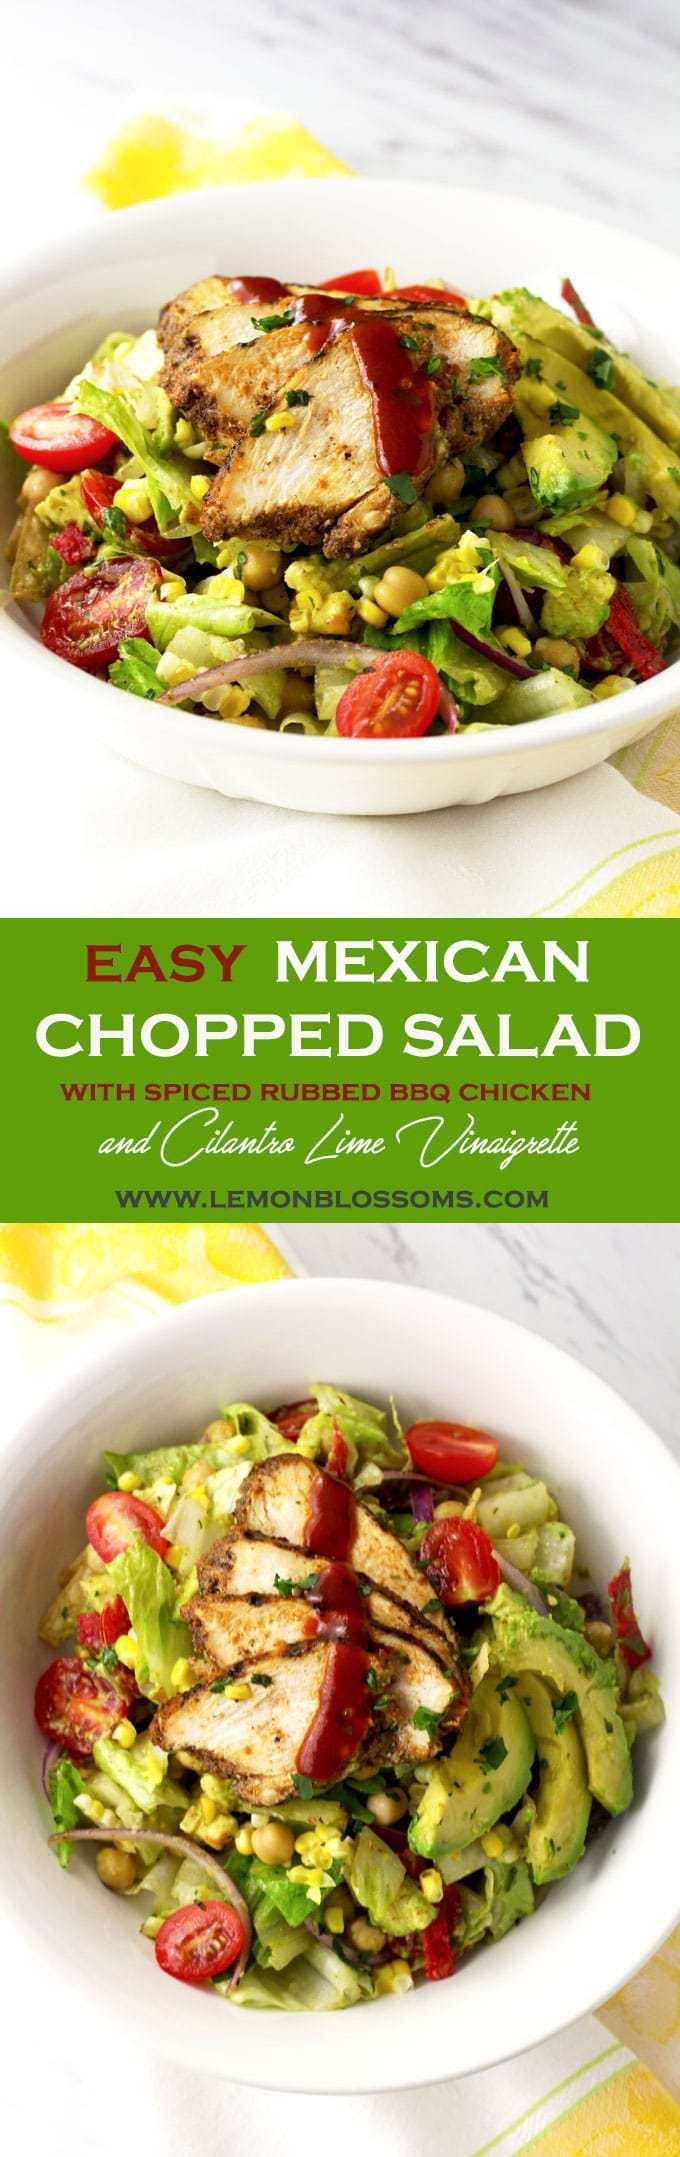 This Easy Mexican Chopped Salad is pure perfection! Avocado, Corn, Tomatoes and Chickpeas are tossed with the easiest Cilantro Lime Vinaigrette and topped with bold and flavorful Spiced Rubbed BBQ Chicken and crunchy Tortilla Strips! Salad perfection!